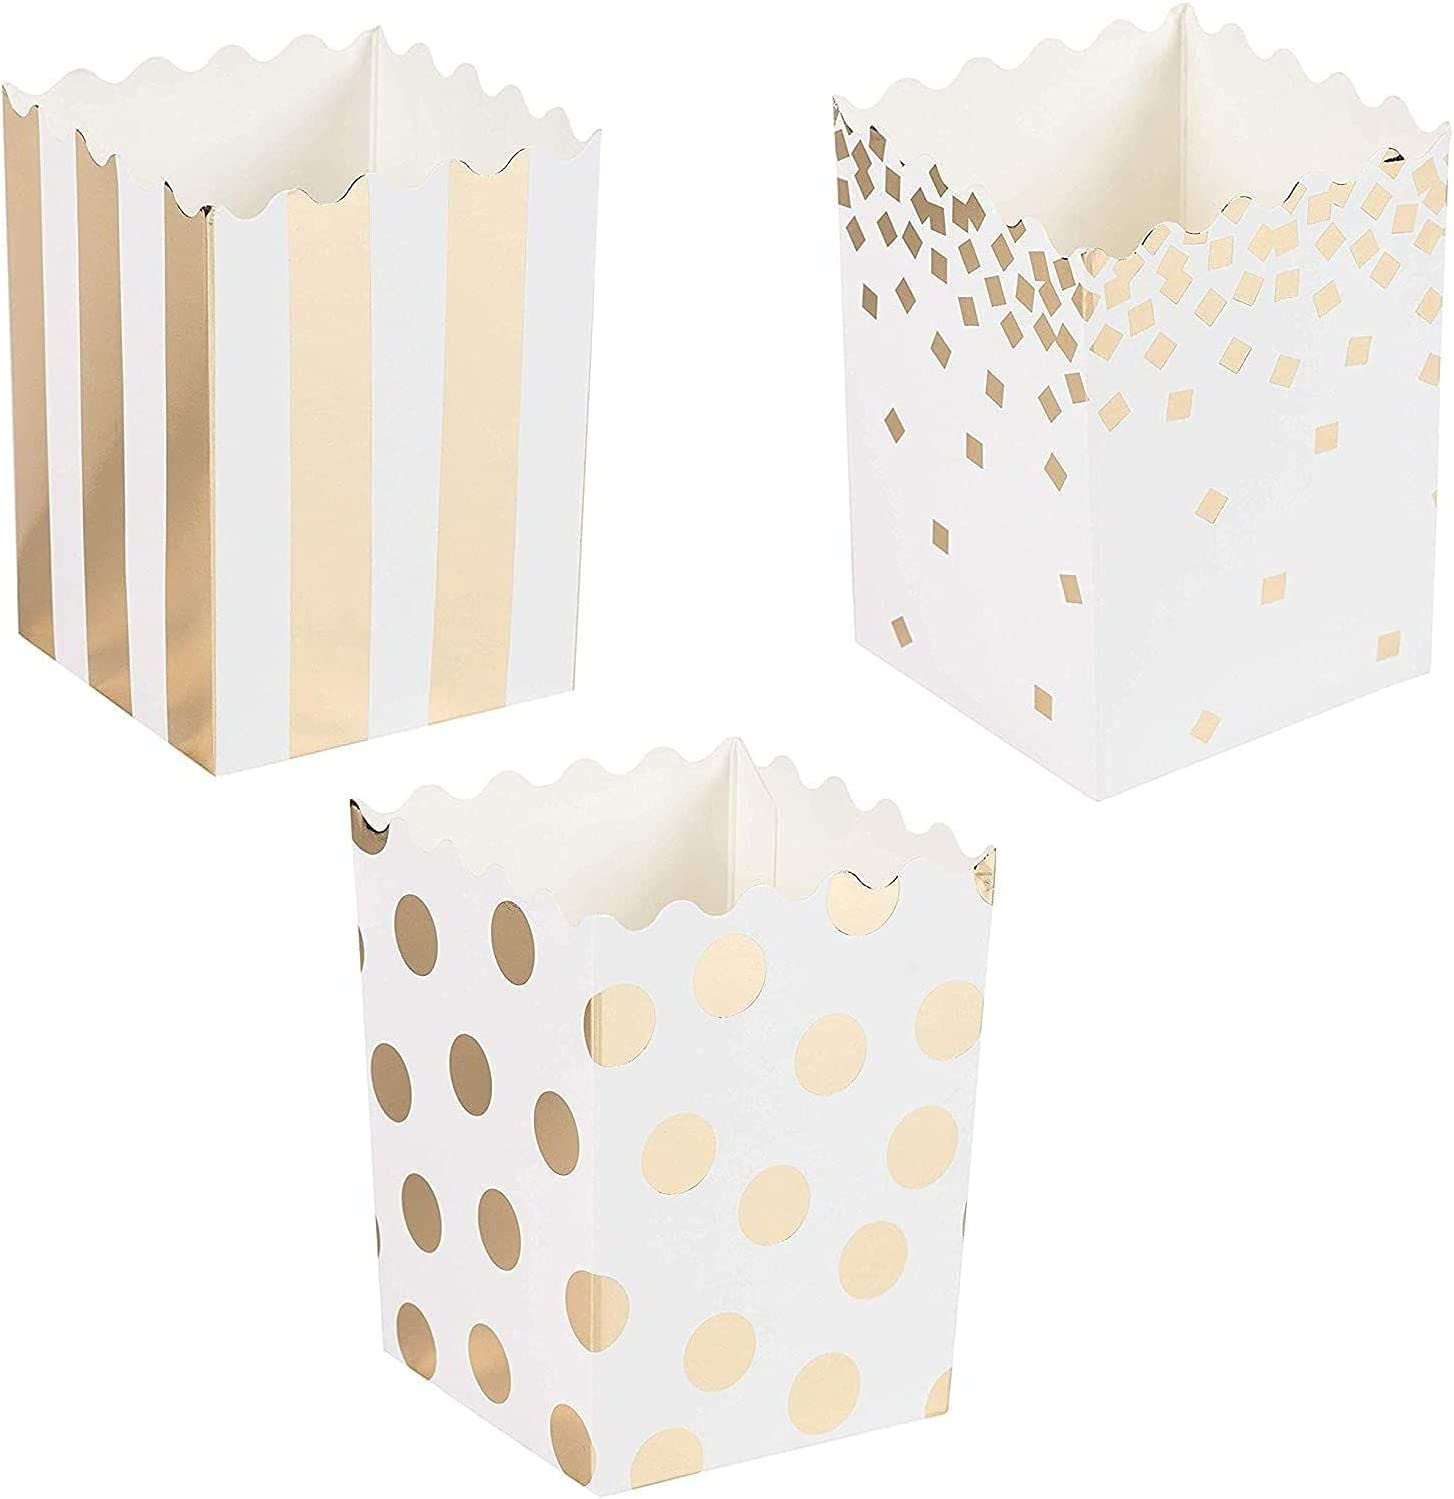 60-Pack Mini Popcorn Boxes - 16oz Small Paper Popcorn and Candy Favor Boxes, Gold Foil Polka Dots, Stripes, Confetti Designs, Baby Shower, Wedding, Birthday Party Supplies, 3 x 4 x 2.8 Inches